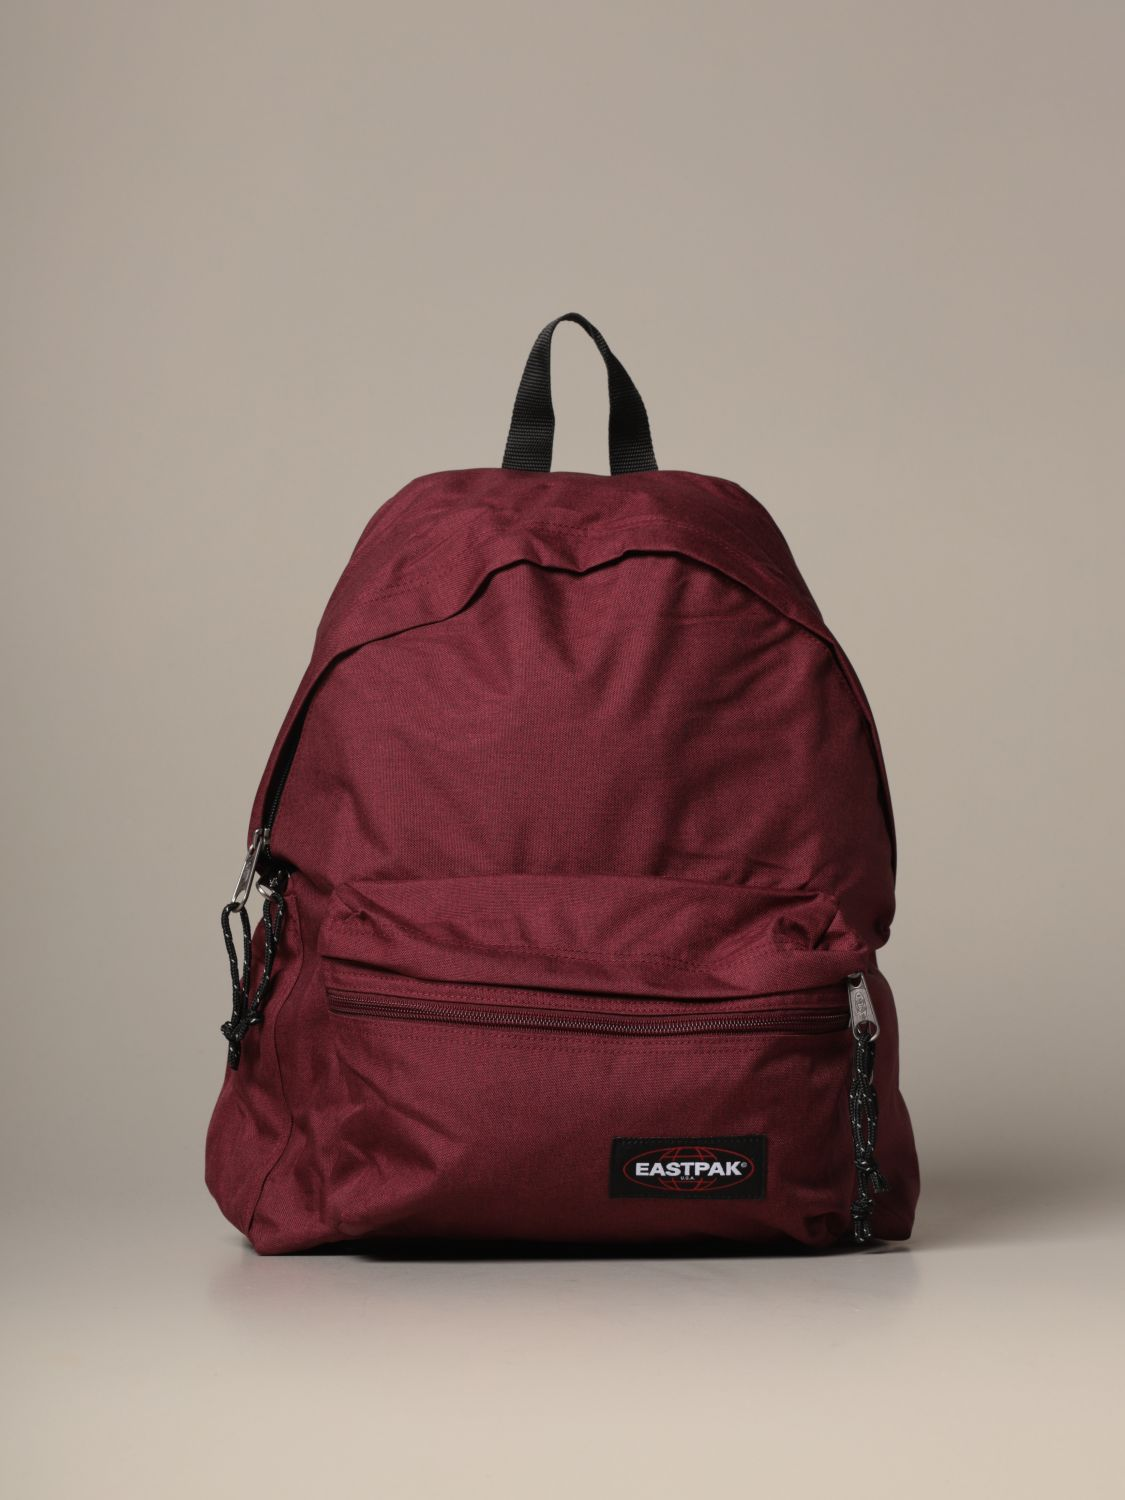 Backpack Eastpak: Padded Zippl'r Eastpak backpack in light canvas with logo burgundy 1